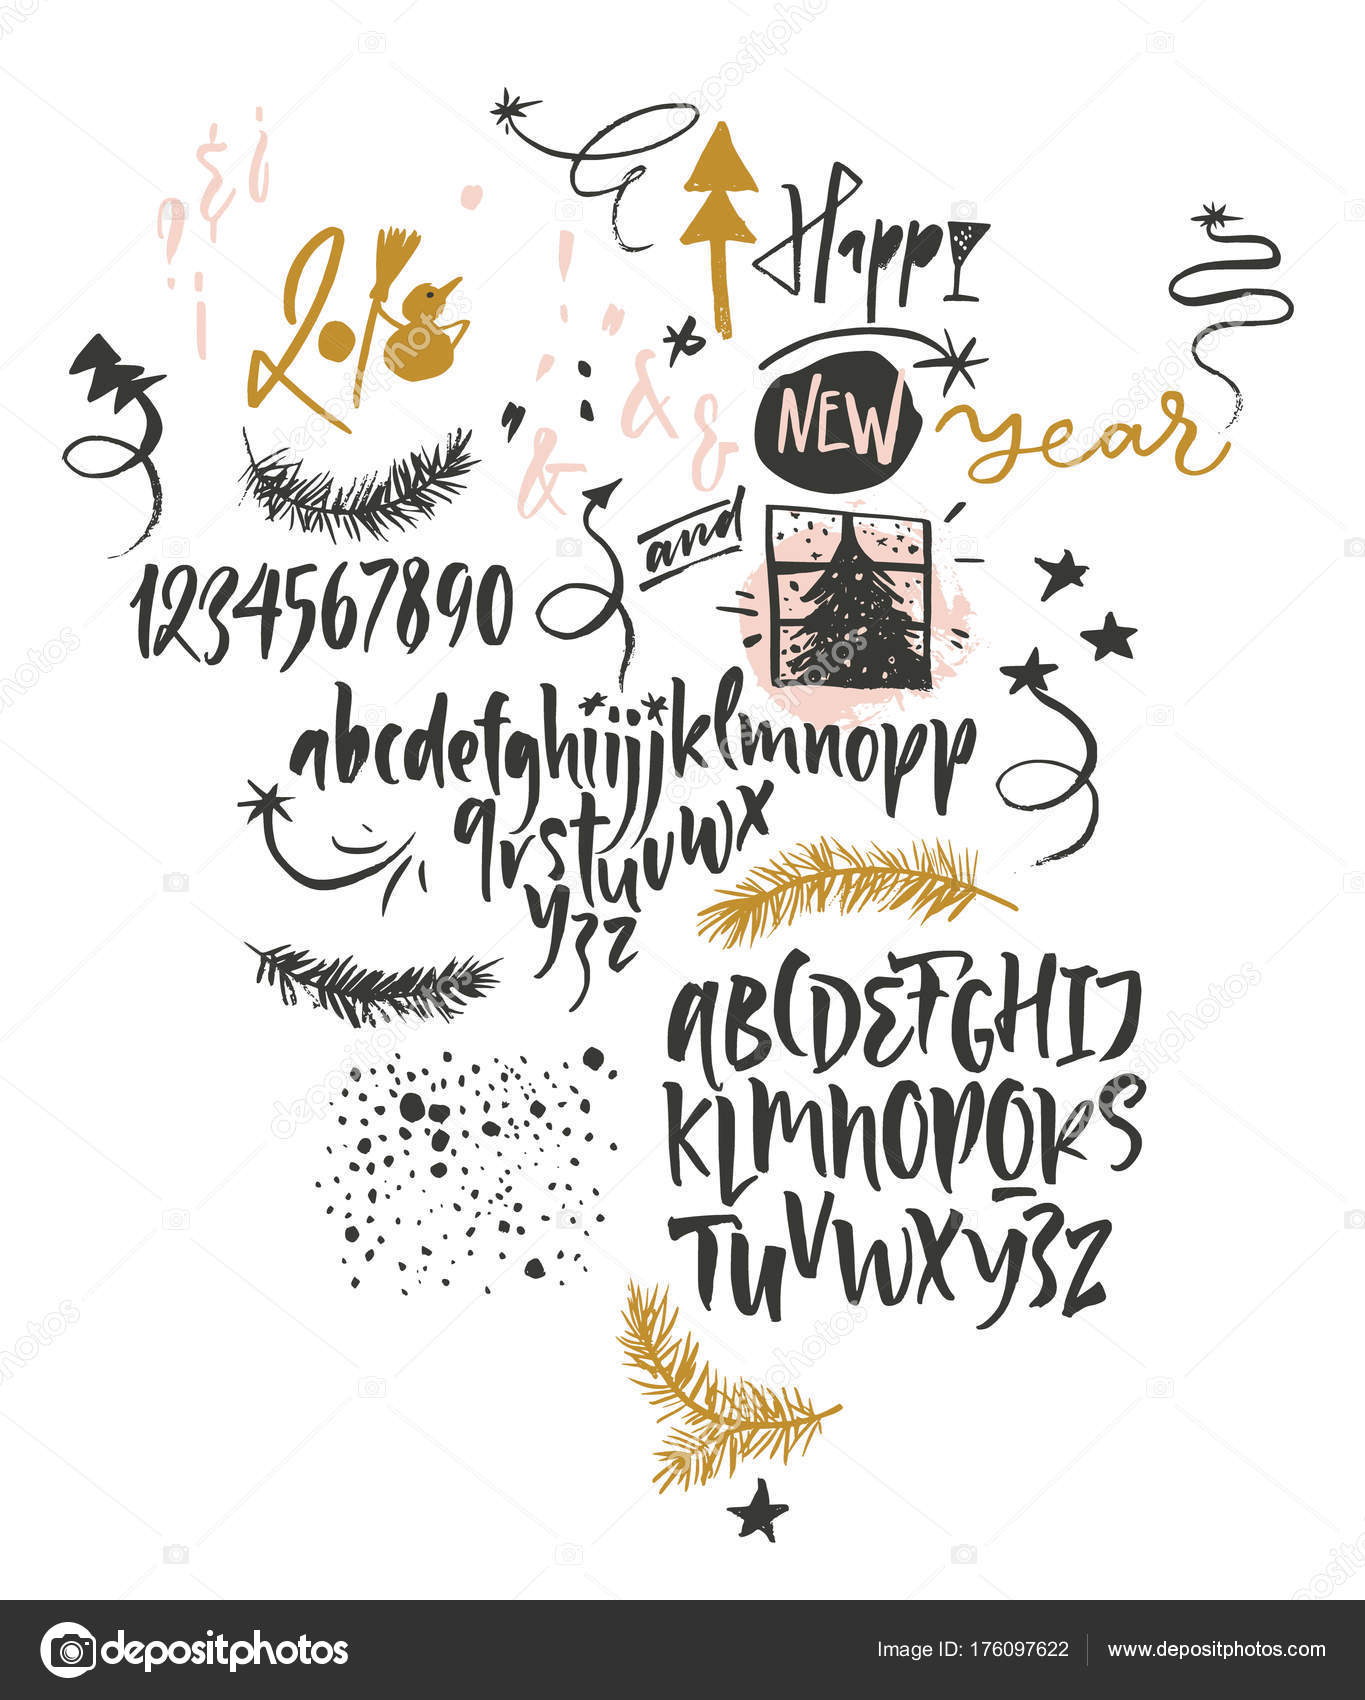 Happy New Year funny font and graphic — Stock Vector © vera.holera ...